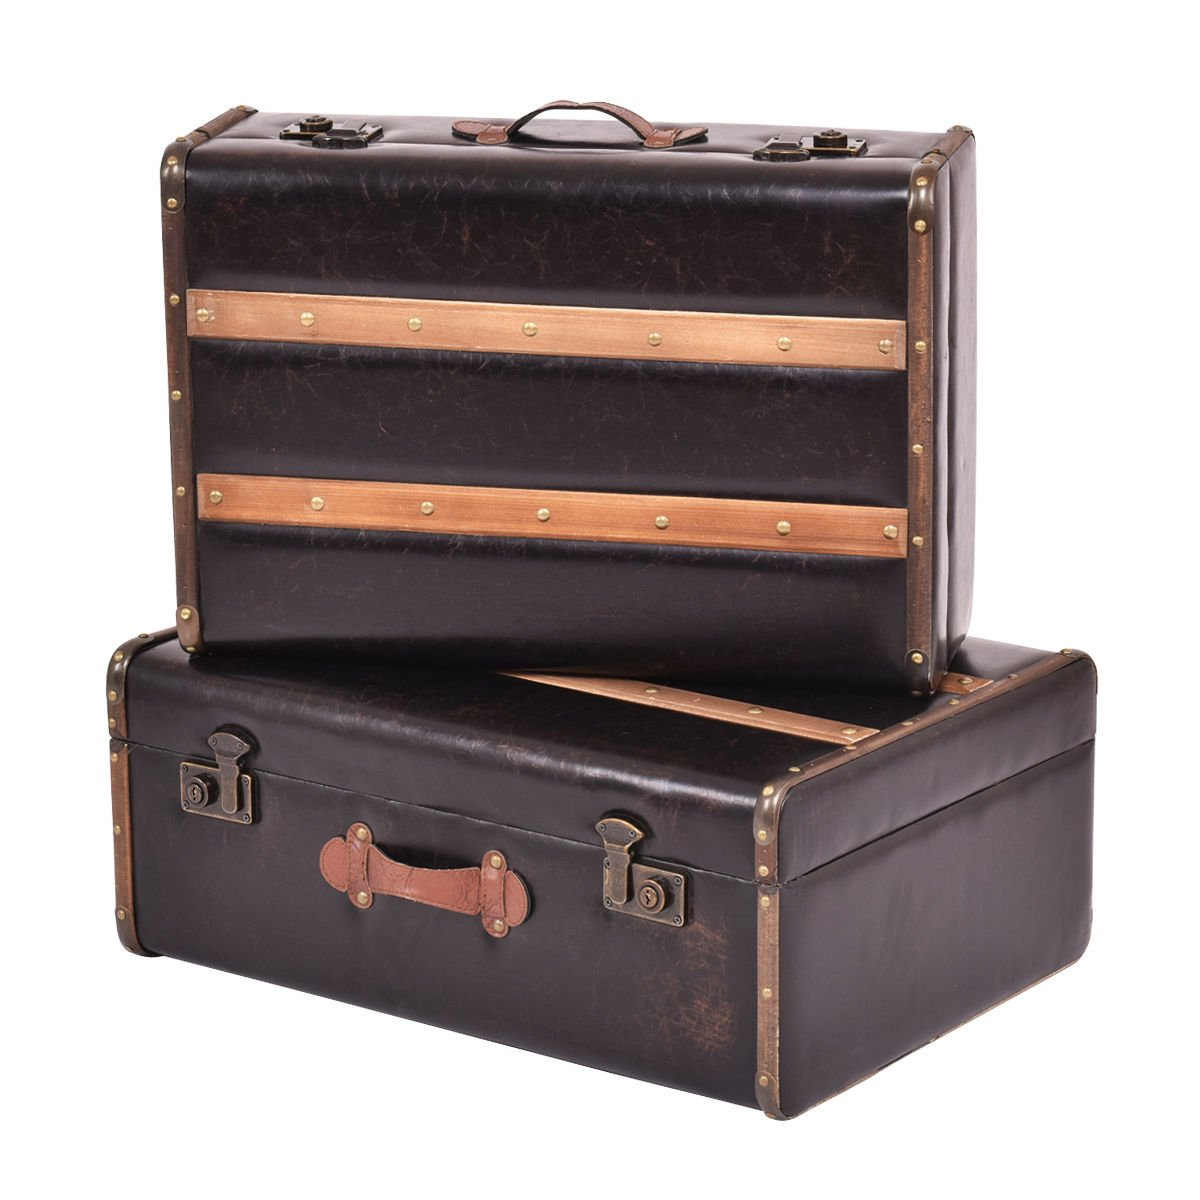 Vintage Suitcase Retro Antique Luggage Train Case Wooden Storage Boxes Set of 2 by Caraya